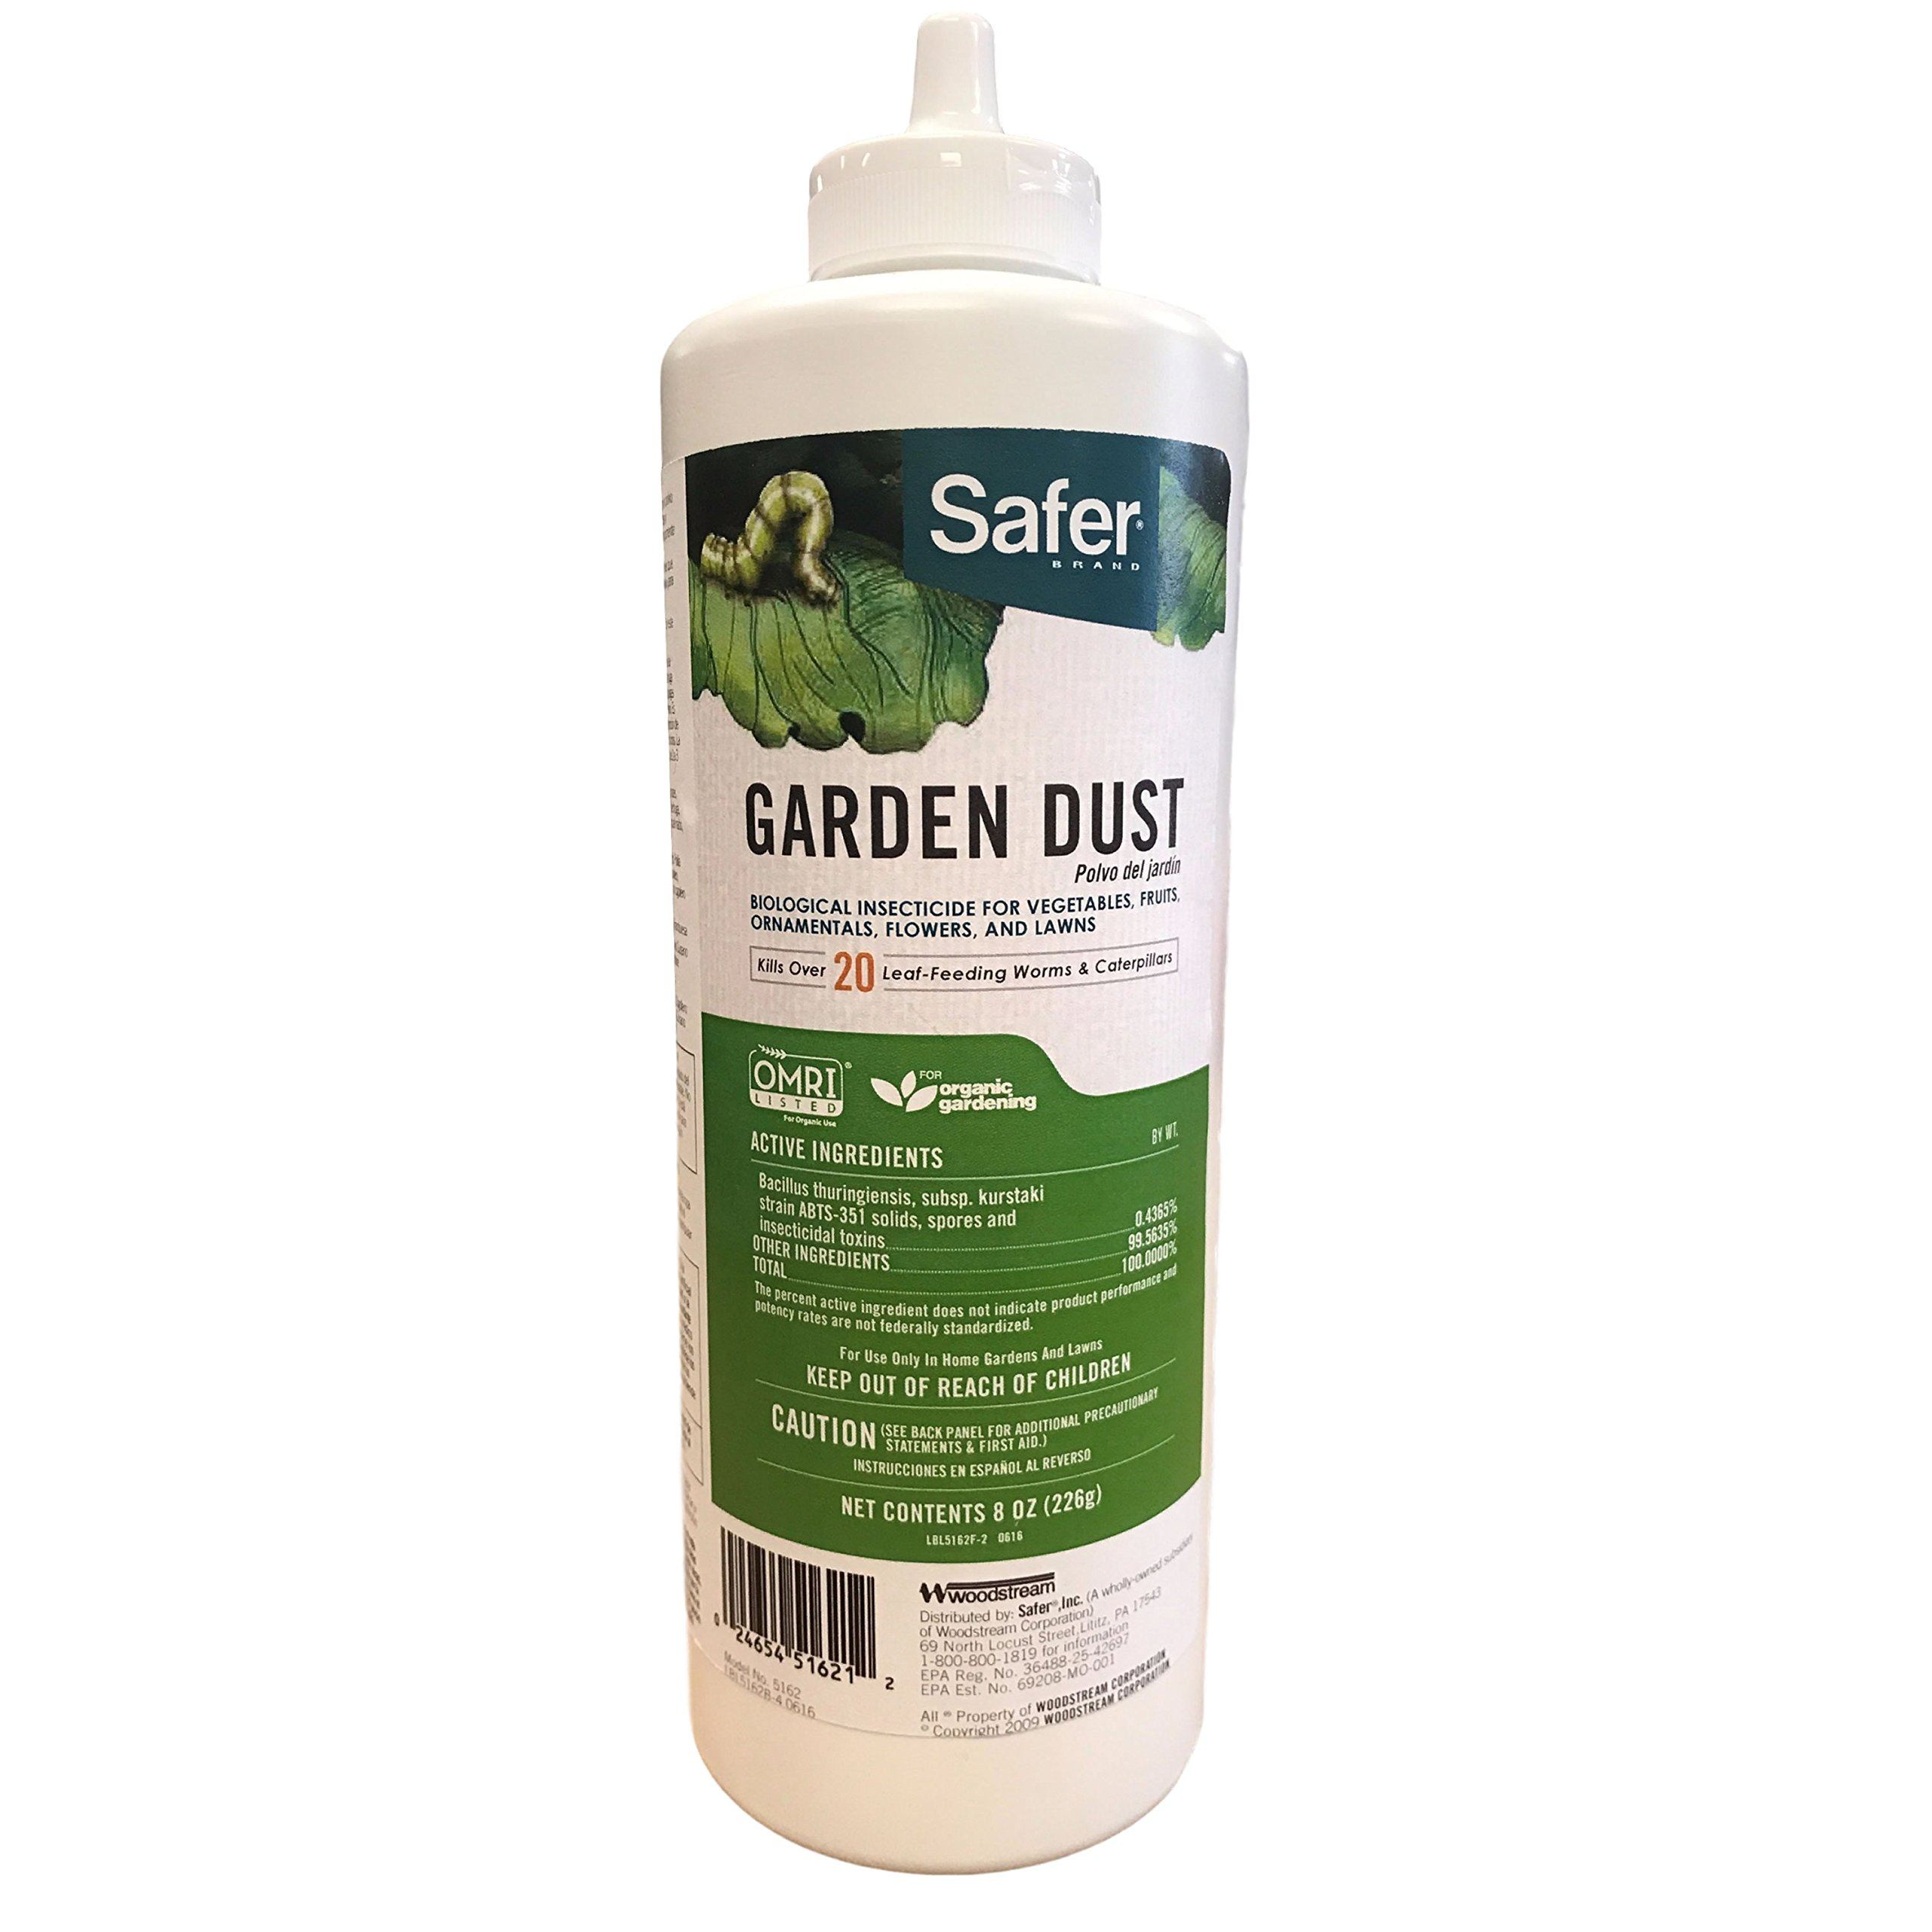 Safer 5162-12 Garden Dust Caterpillar Killer with with B.T. 8oz